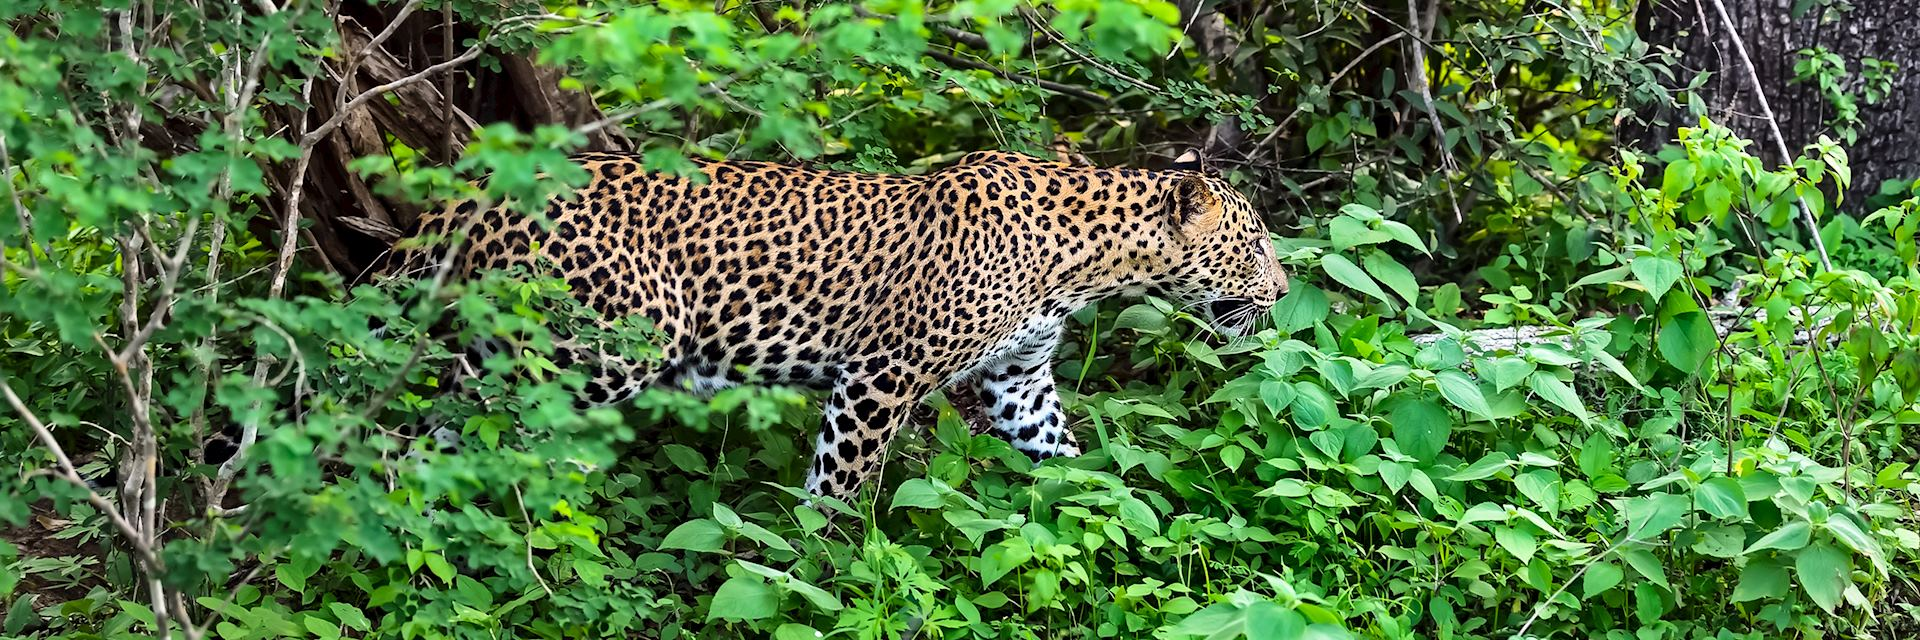 Leopard, Yala National Park